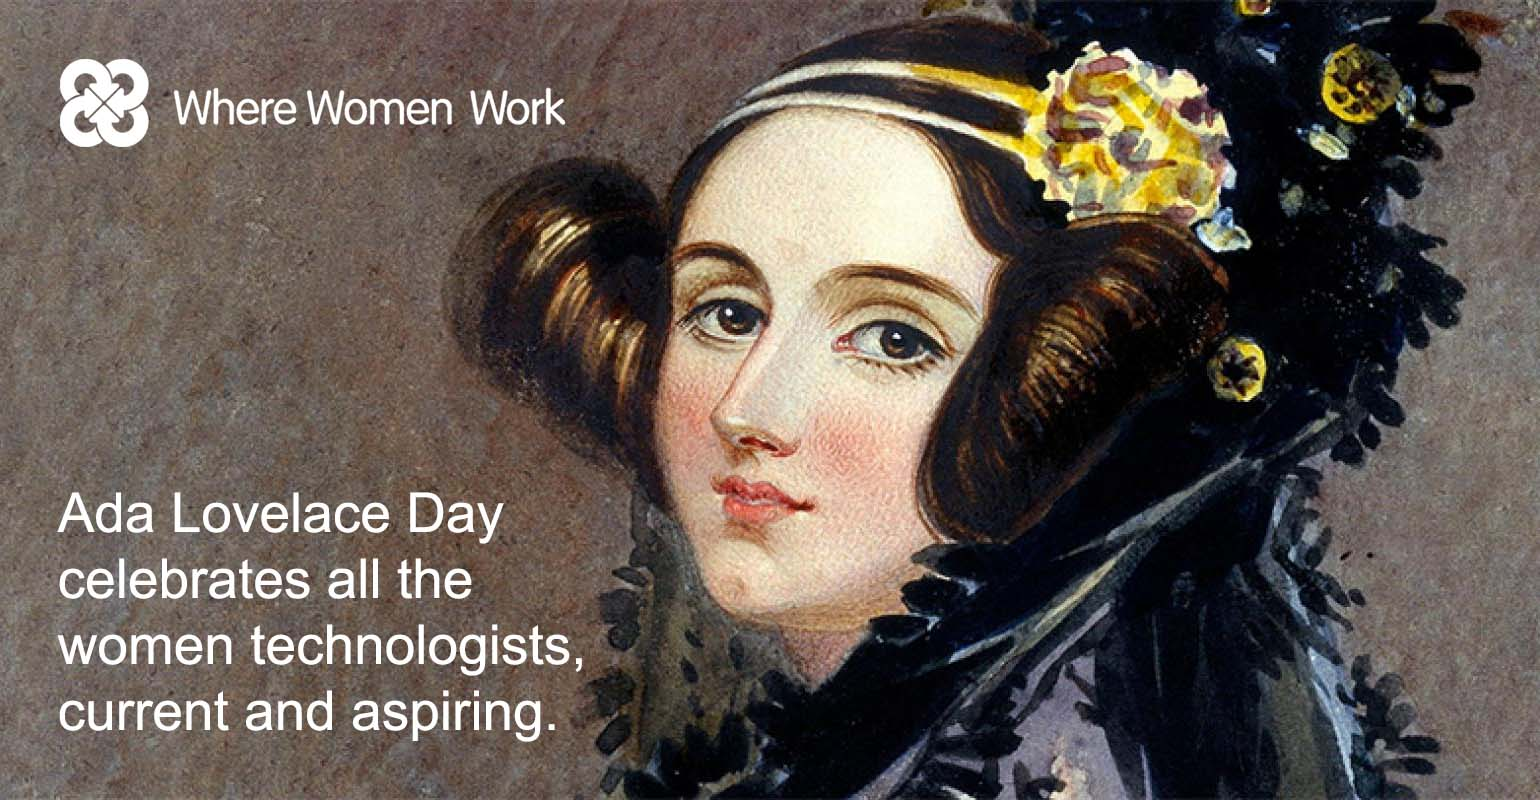 Ada Lovelace Day celebrates the achievements of women in STEM